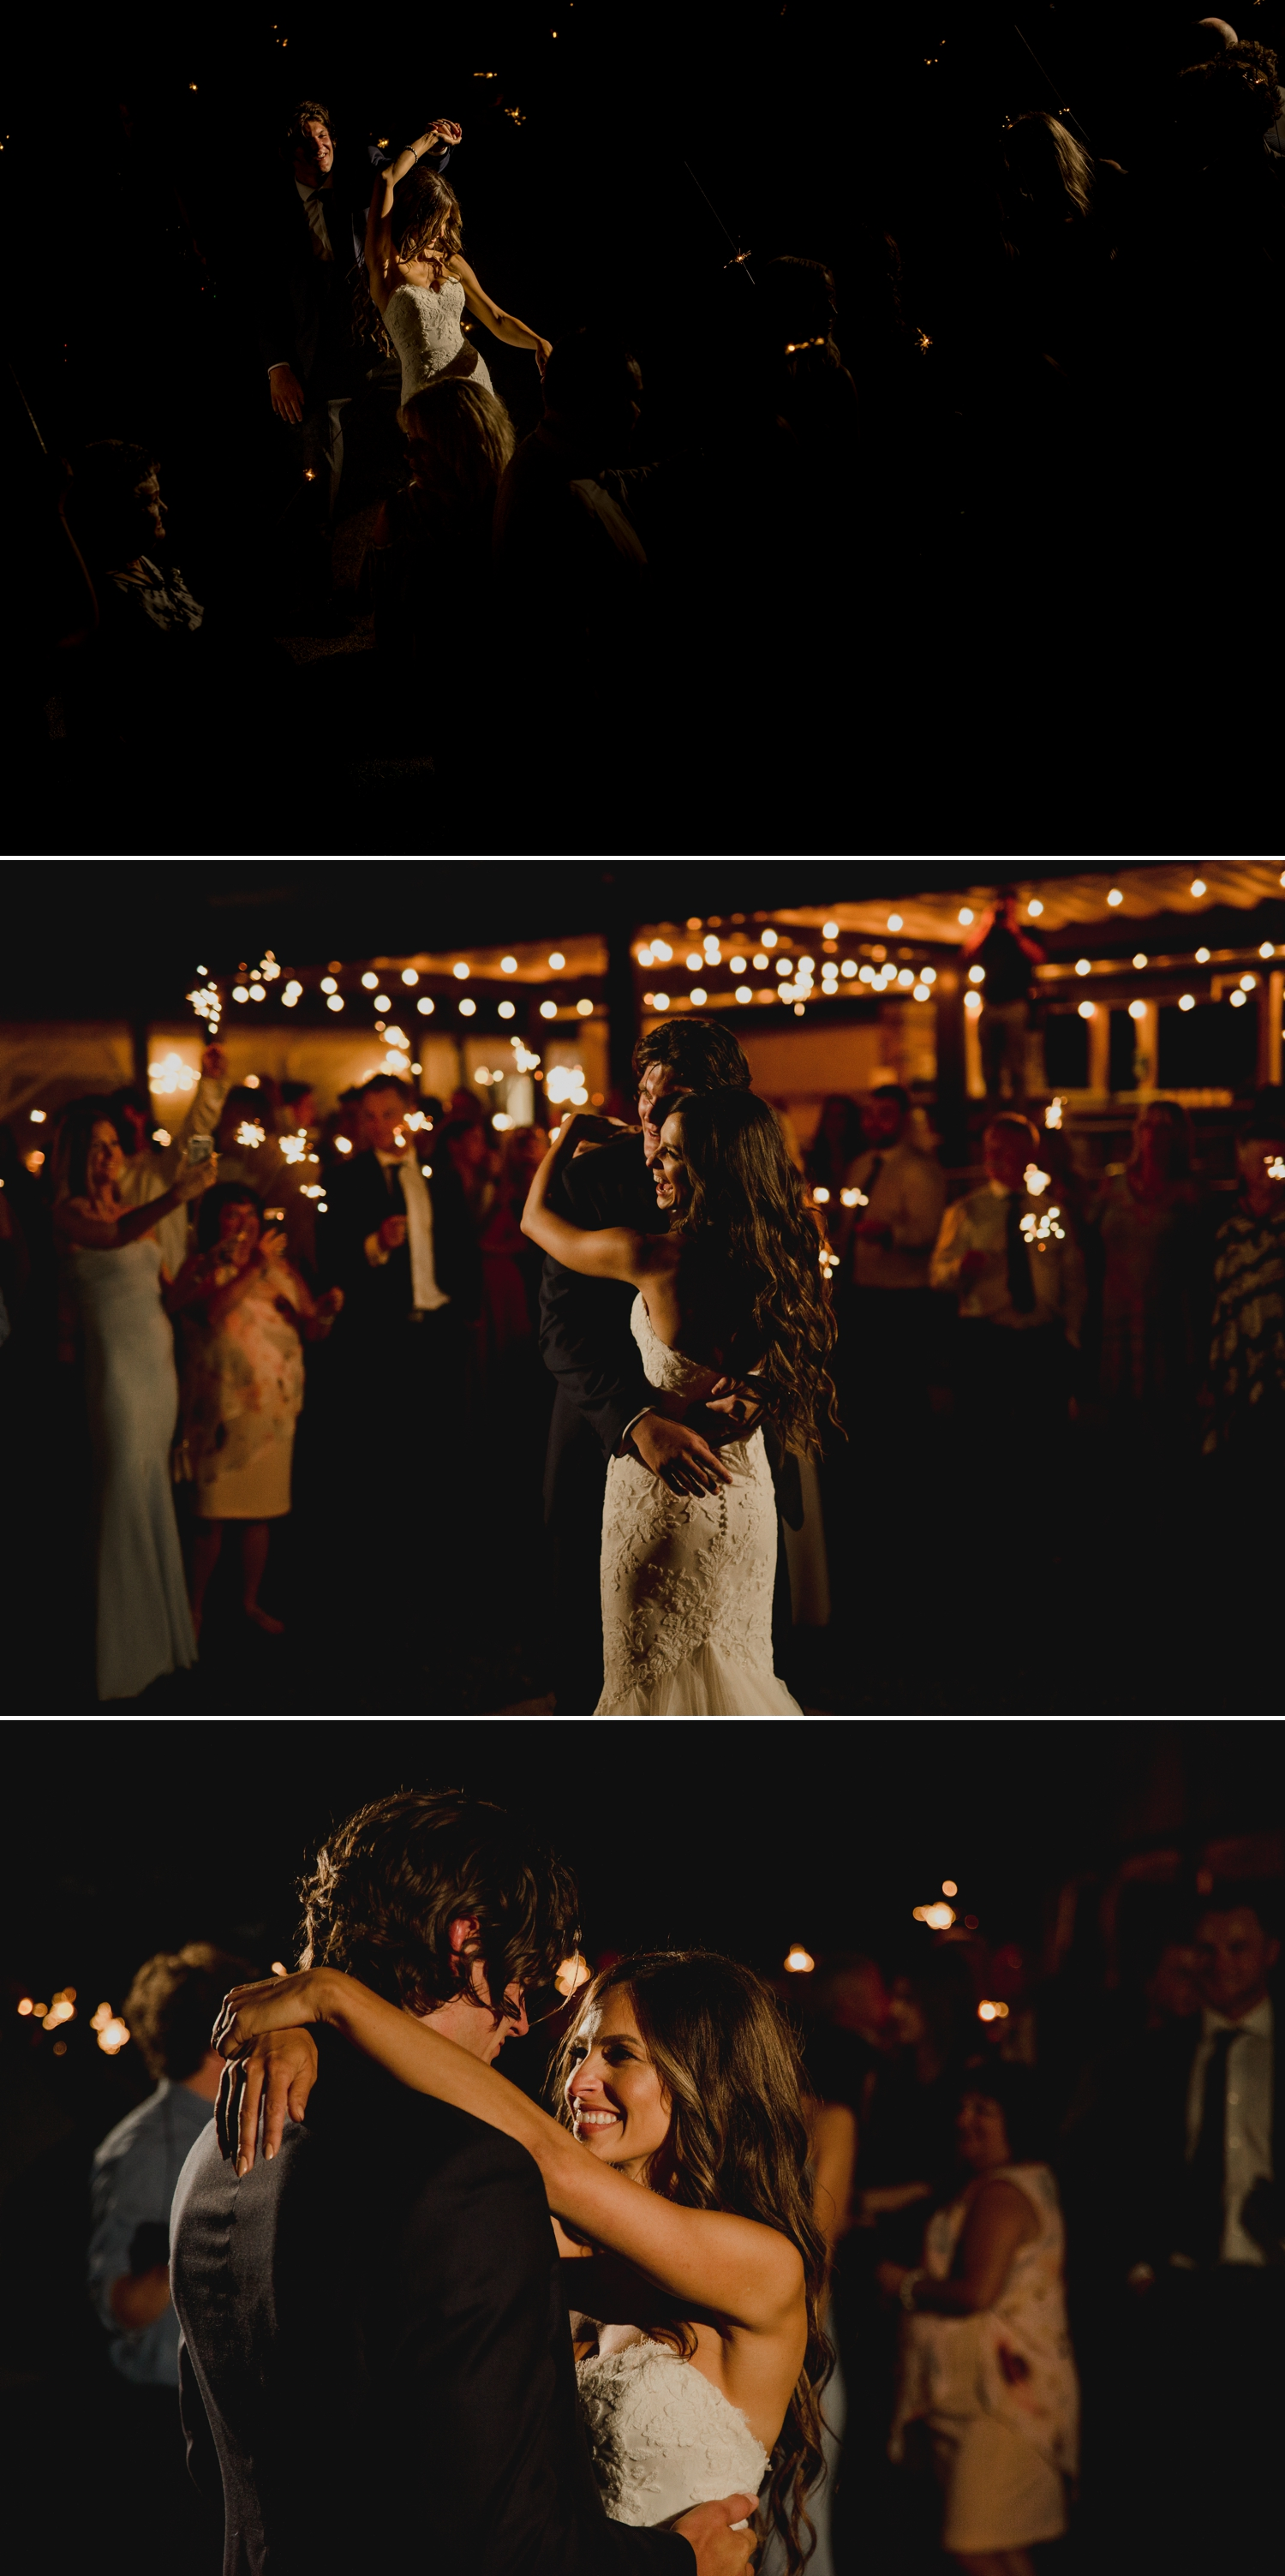 photos of bride and groom having their first dance at night at the ravine vineyard in niagara on the lake ontario